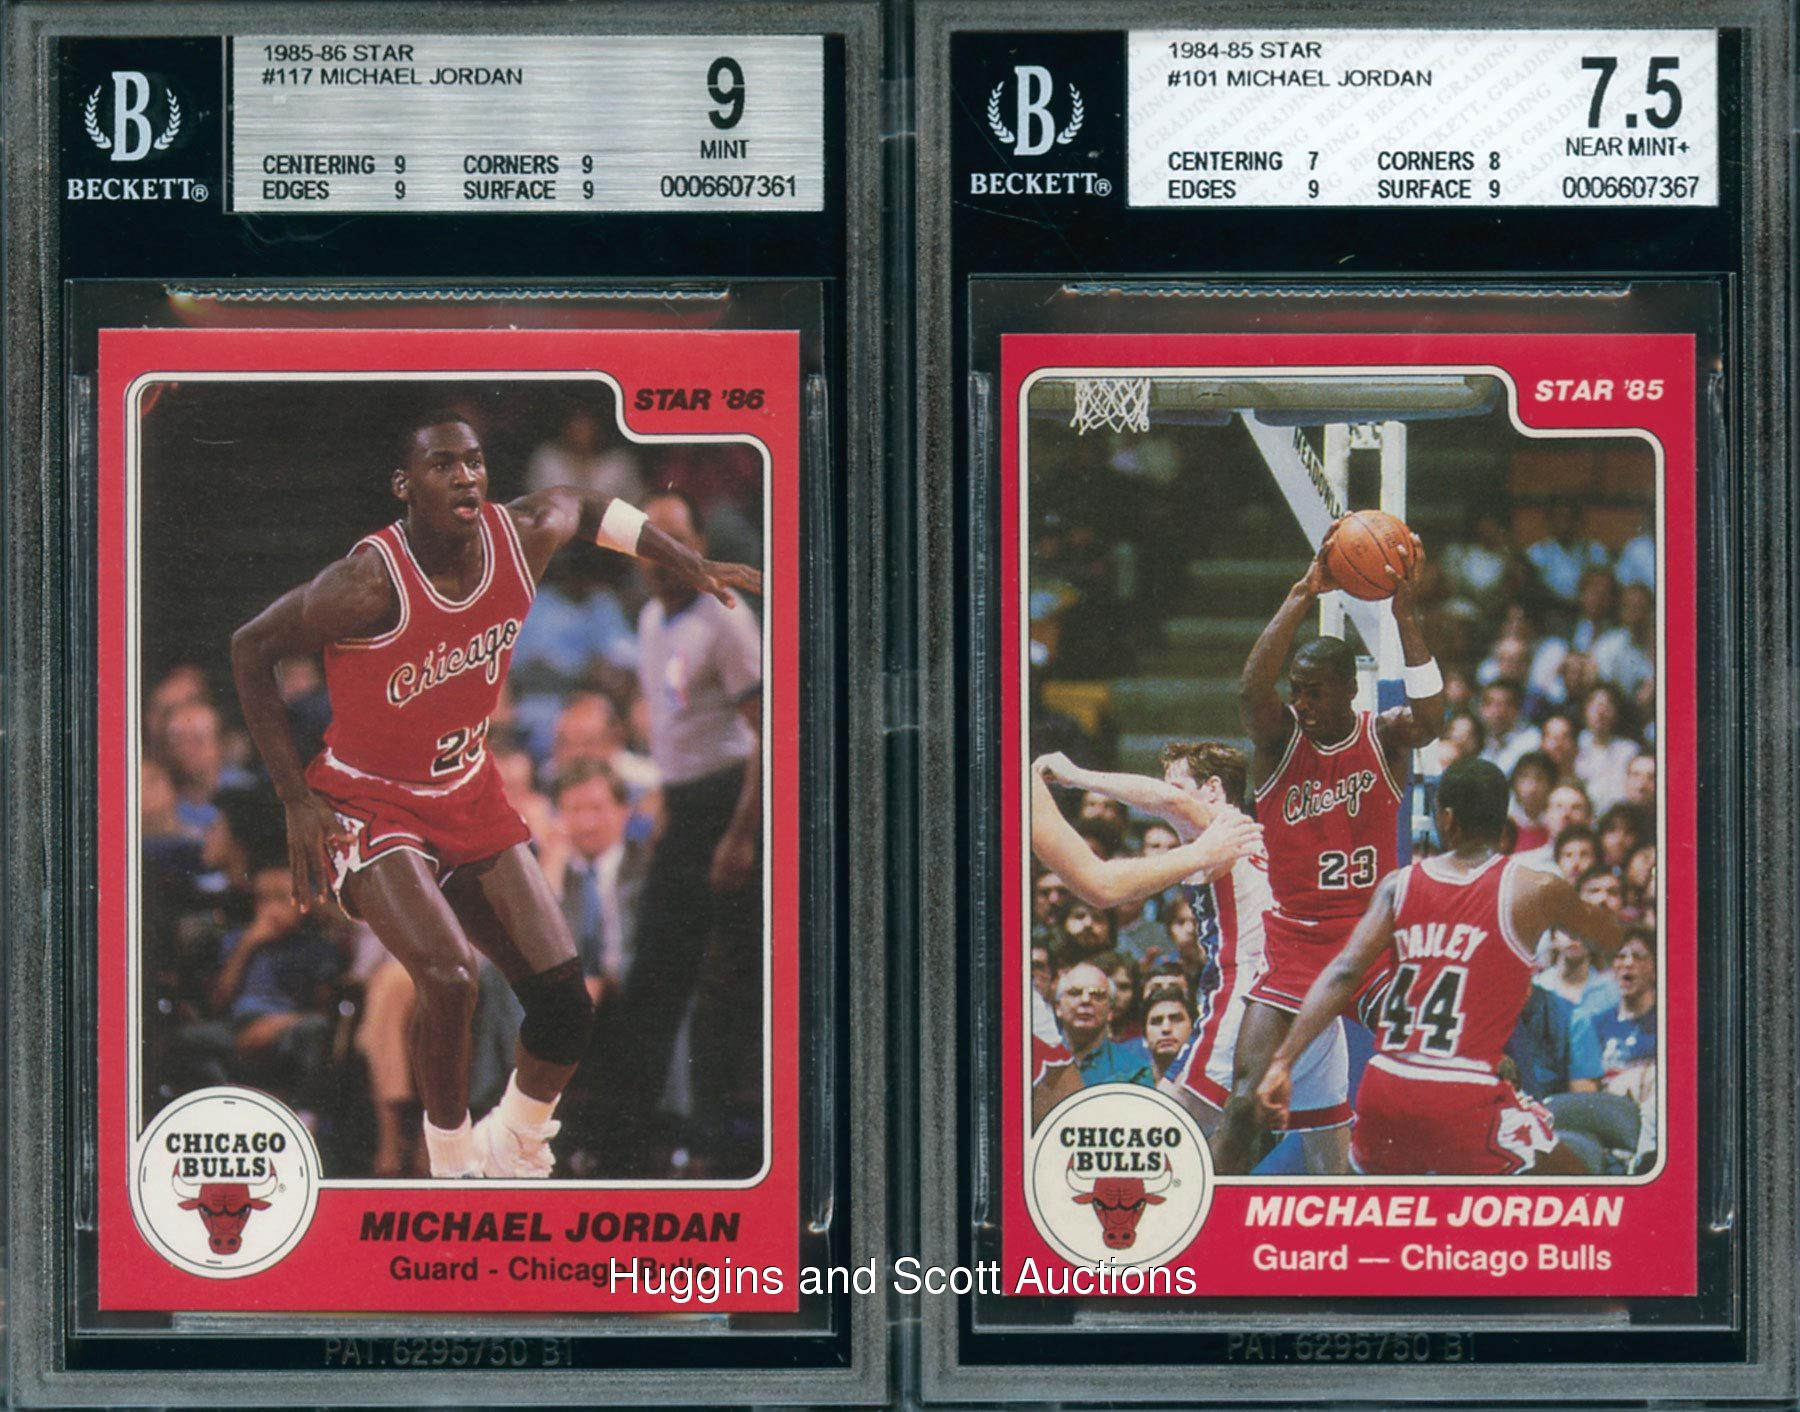 2 1984 1986 Star Basketball Michael Jordan Cards With Rookie Both BGS